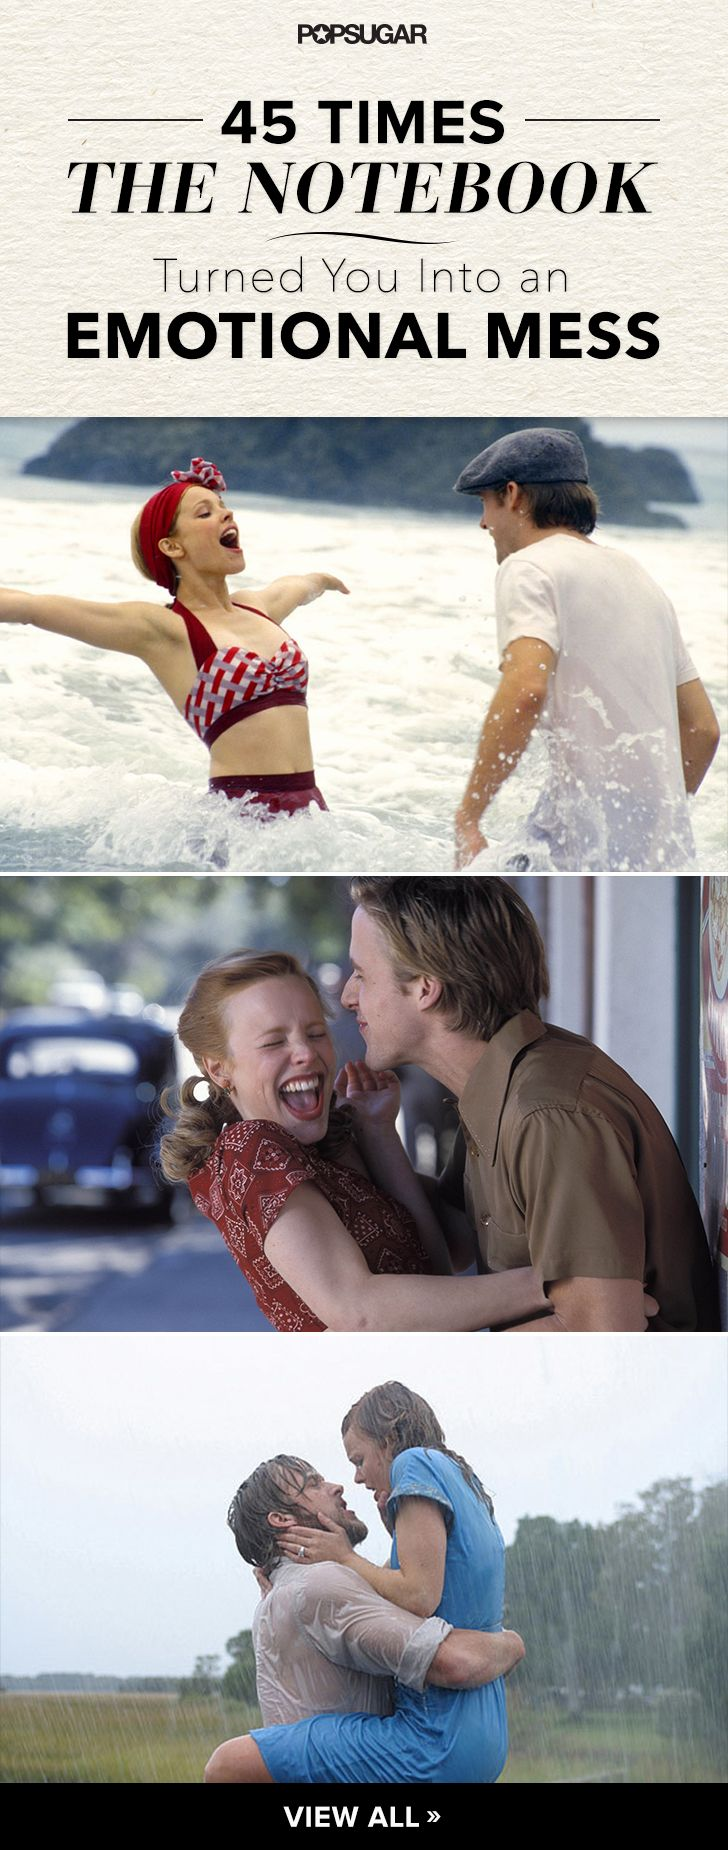 It's been over a decade since The Notebook hit theaters back in 2004, but Noah and Allie's heartwarming, heartwrenching love story still leaves us reeling